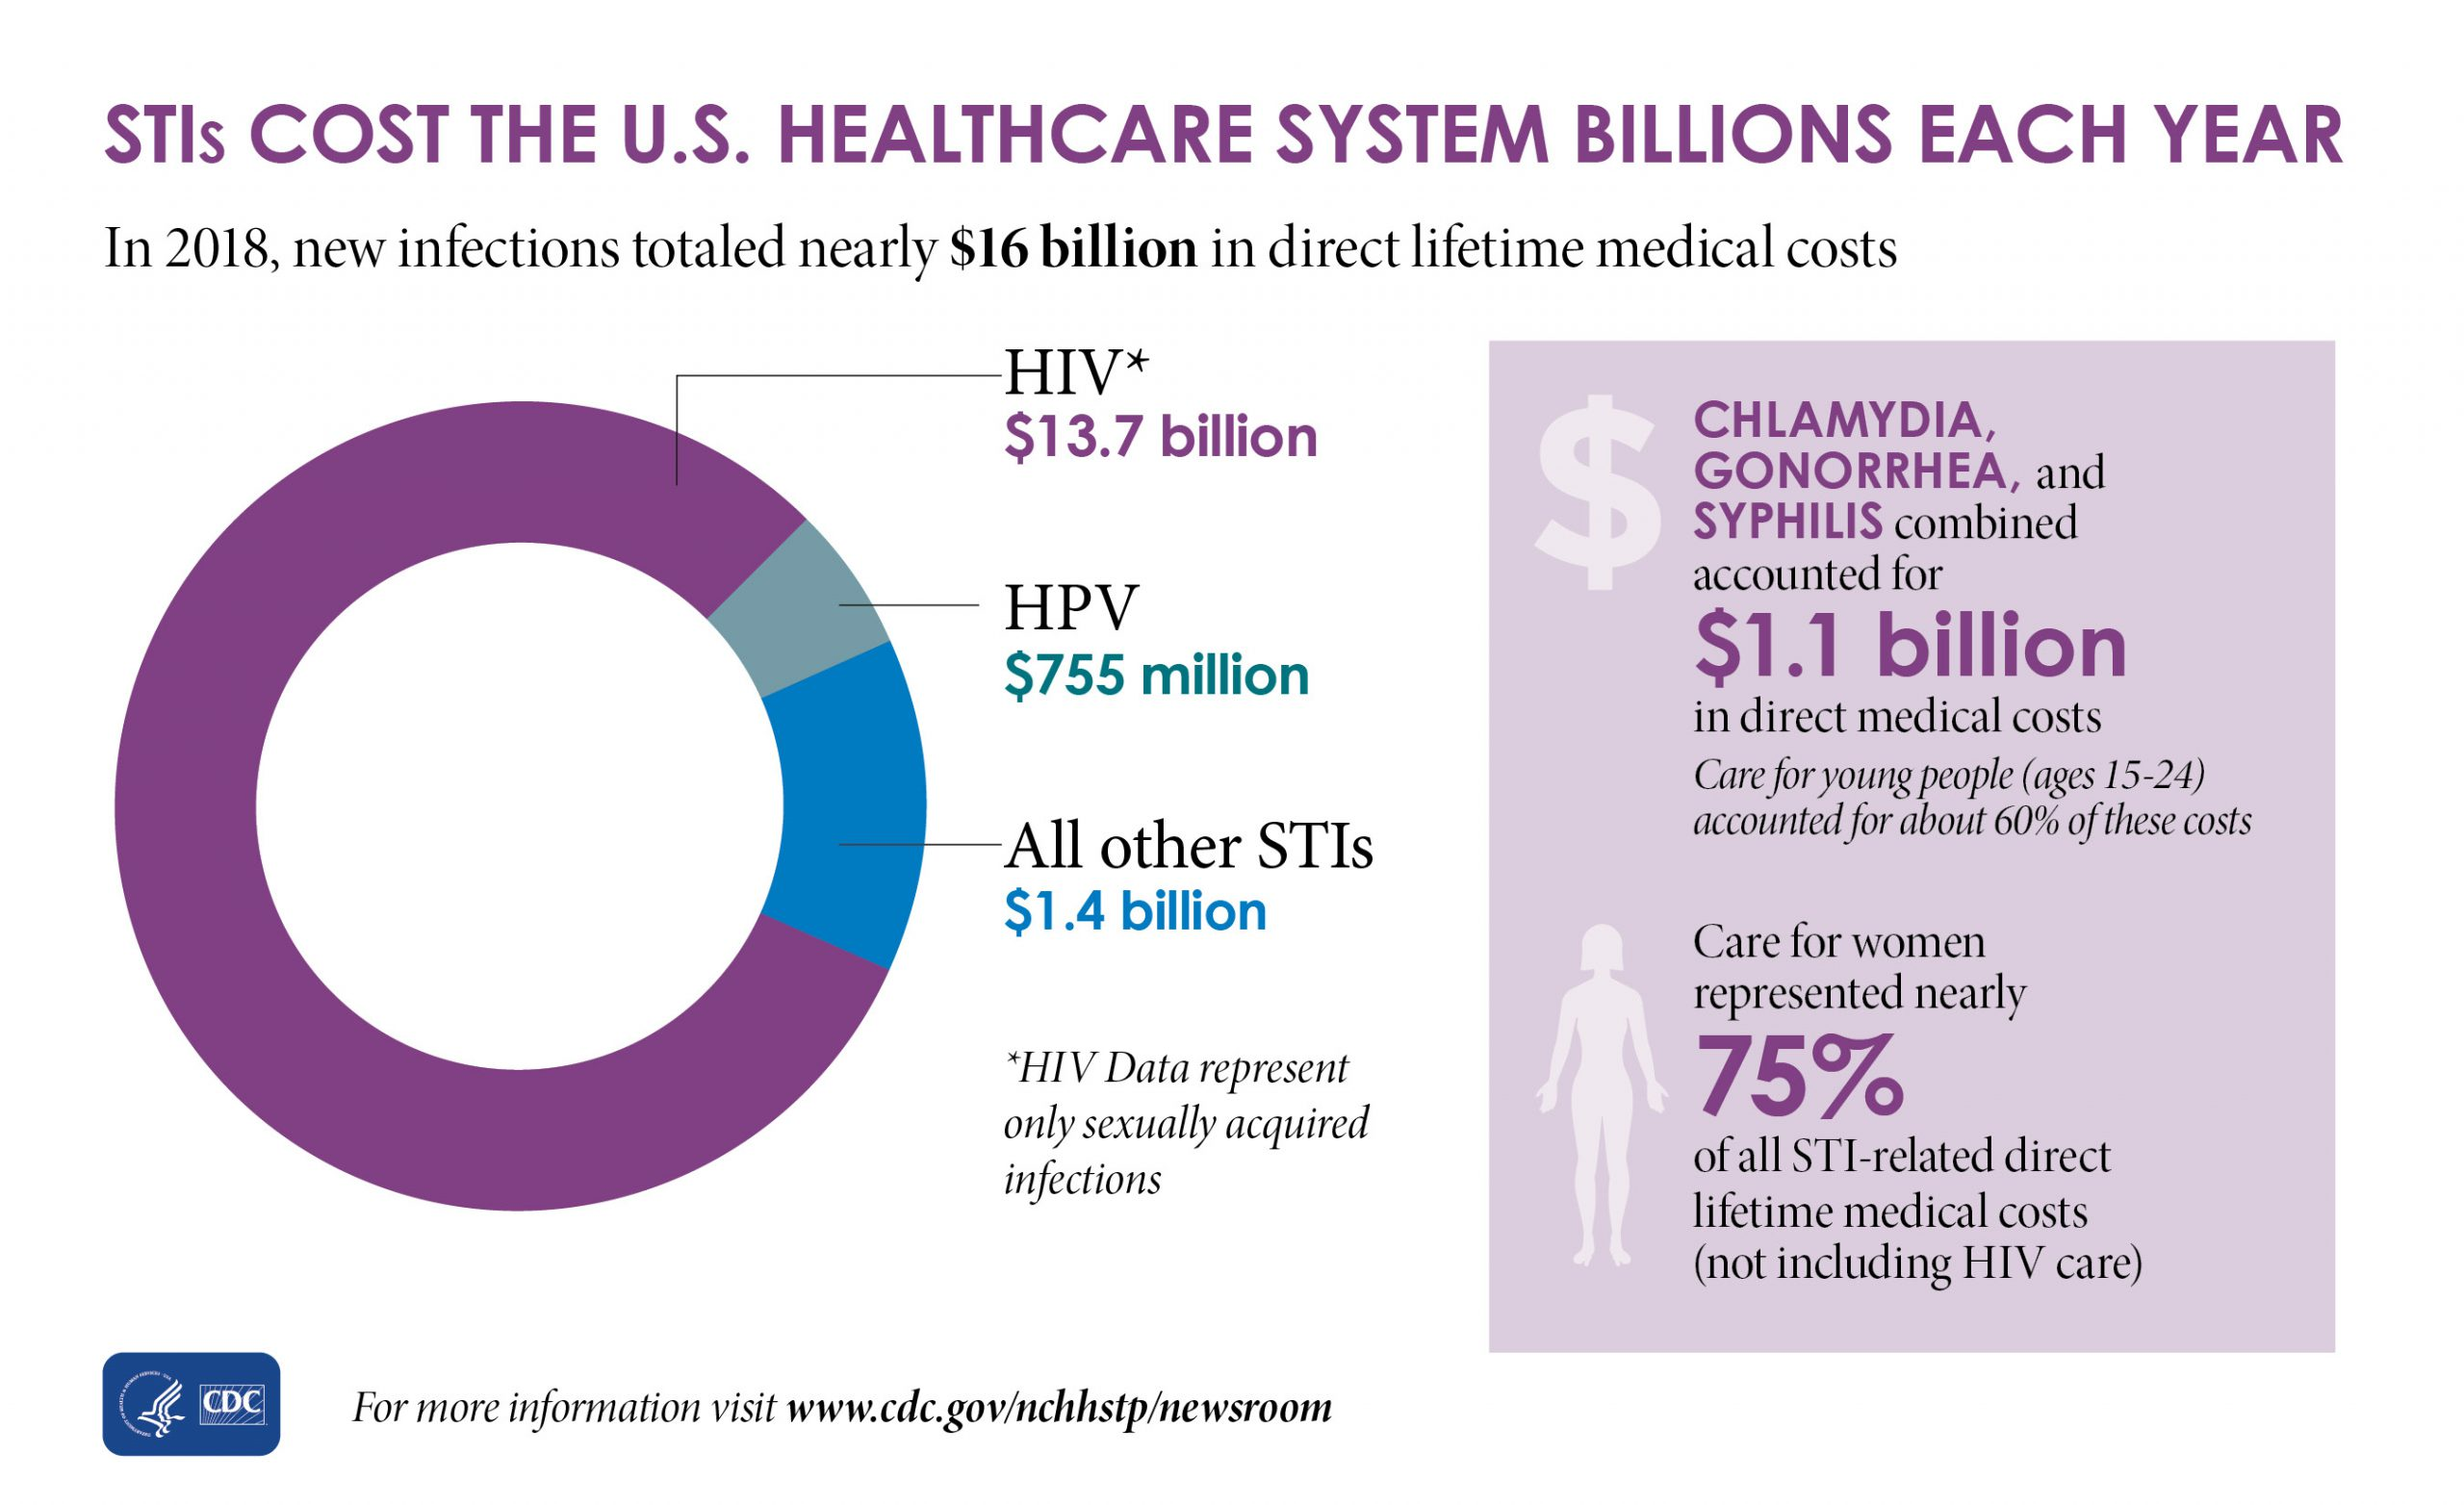 This graphic shows that in 2018, new HIV infections cost $13.7 billion in direct lifetime medical costs, new HPV infections cost $755 million in direct lifetime medical costs, and all other STIs cost $1.4 billion in direct lifetime medical costs.   This graphic shows that chlamydia, gonorrhea, and syphilis combined accounted for $1.1 billion in direct medical costs, and that care for young people (ages 15-24) accounted for about 60% of these costs.   This graphic shows that care for women represented nearly 75% of all STI-related direct lifetime medical costs (not including HIV care).   This graphic shows that HIV data represent only sexually acquired infections.